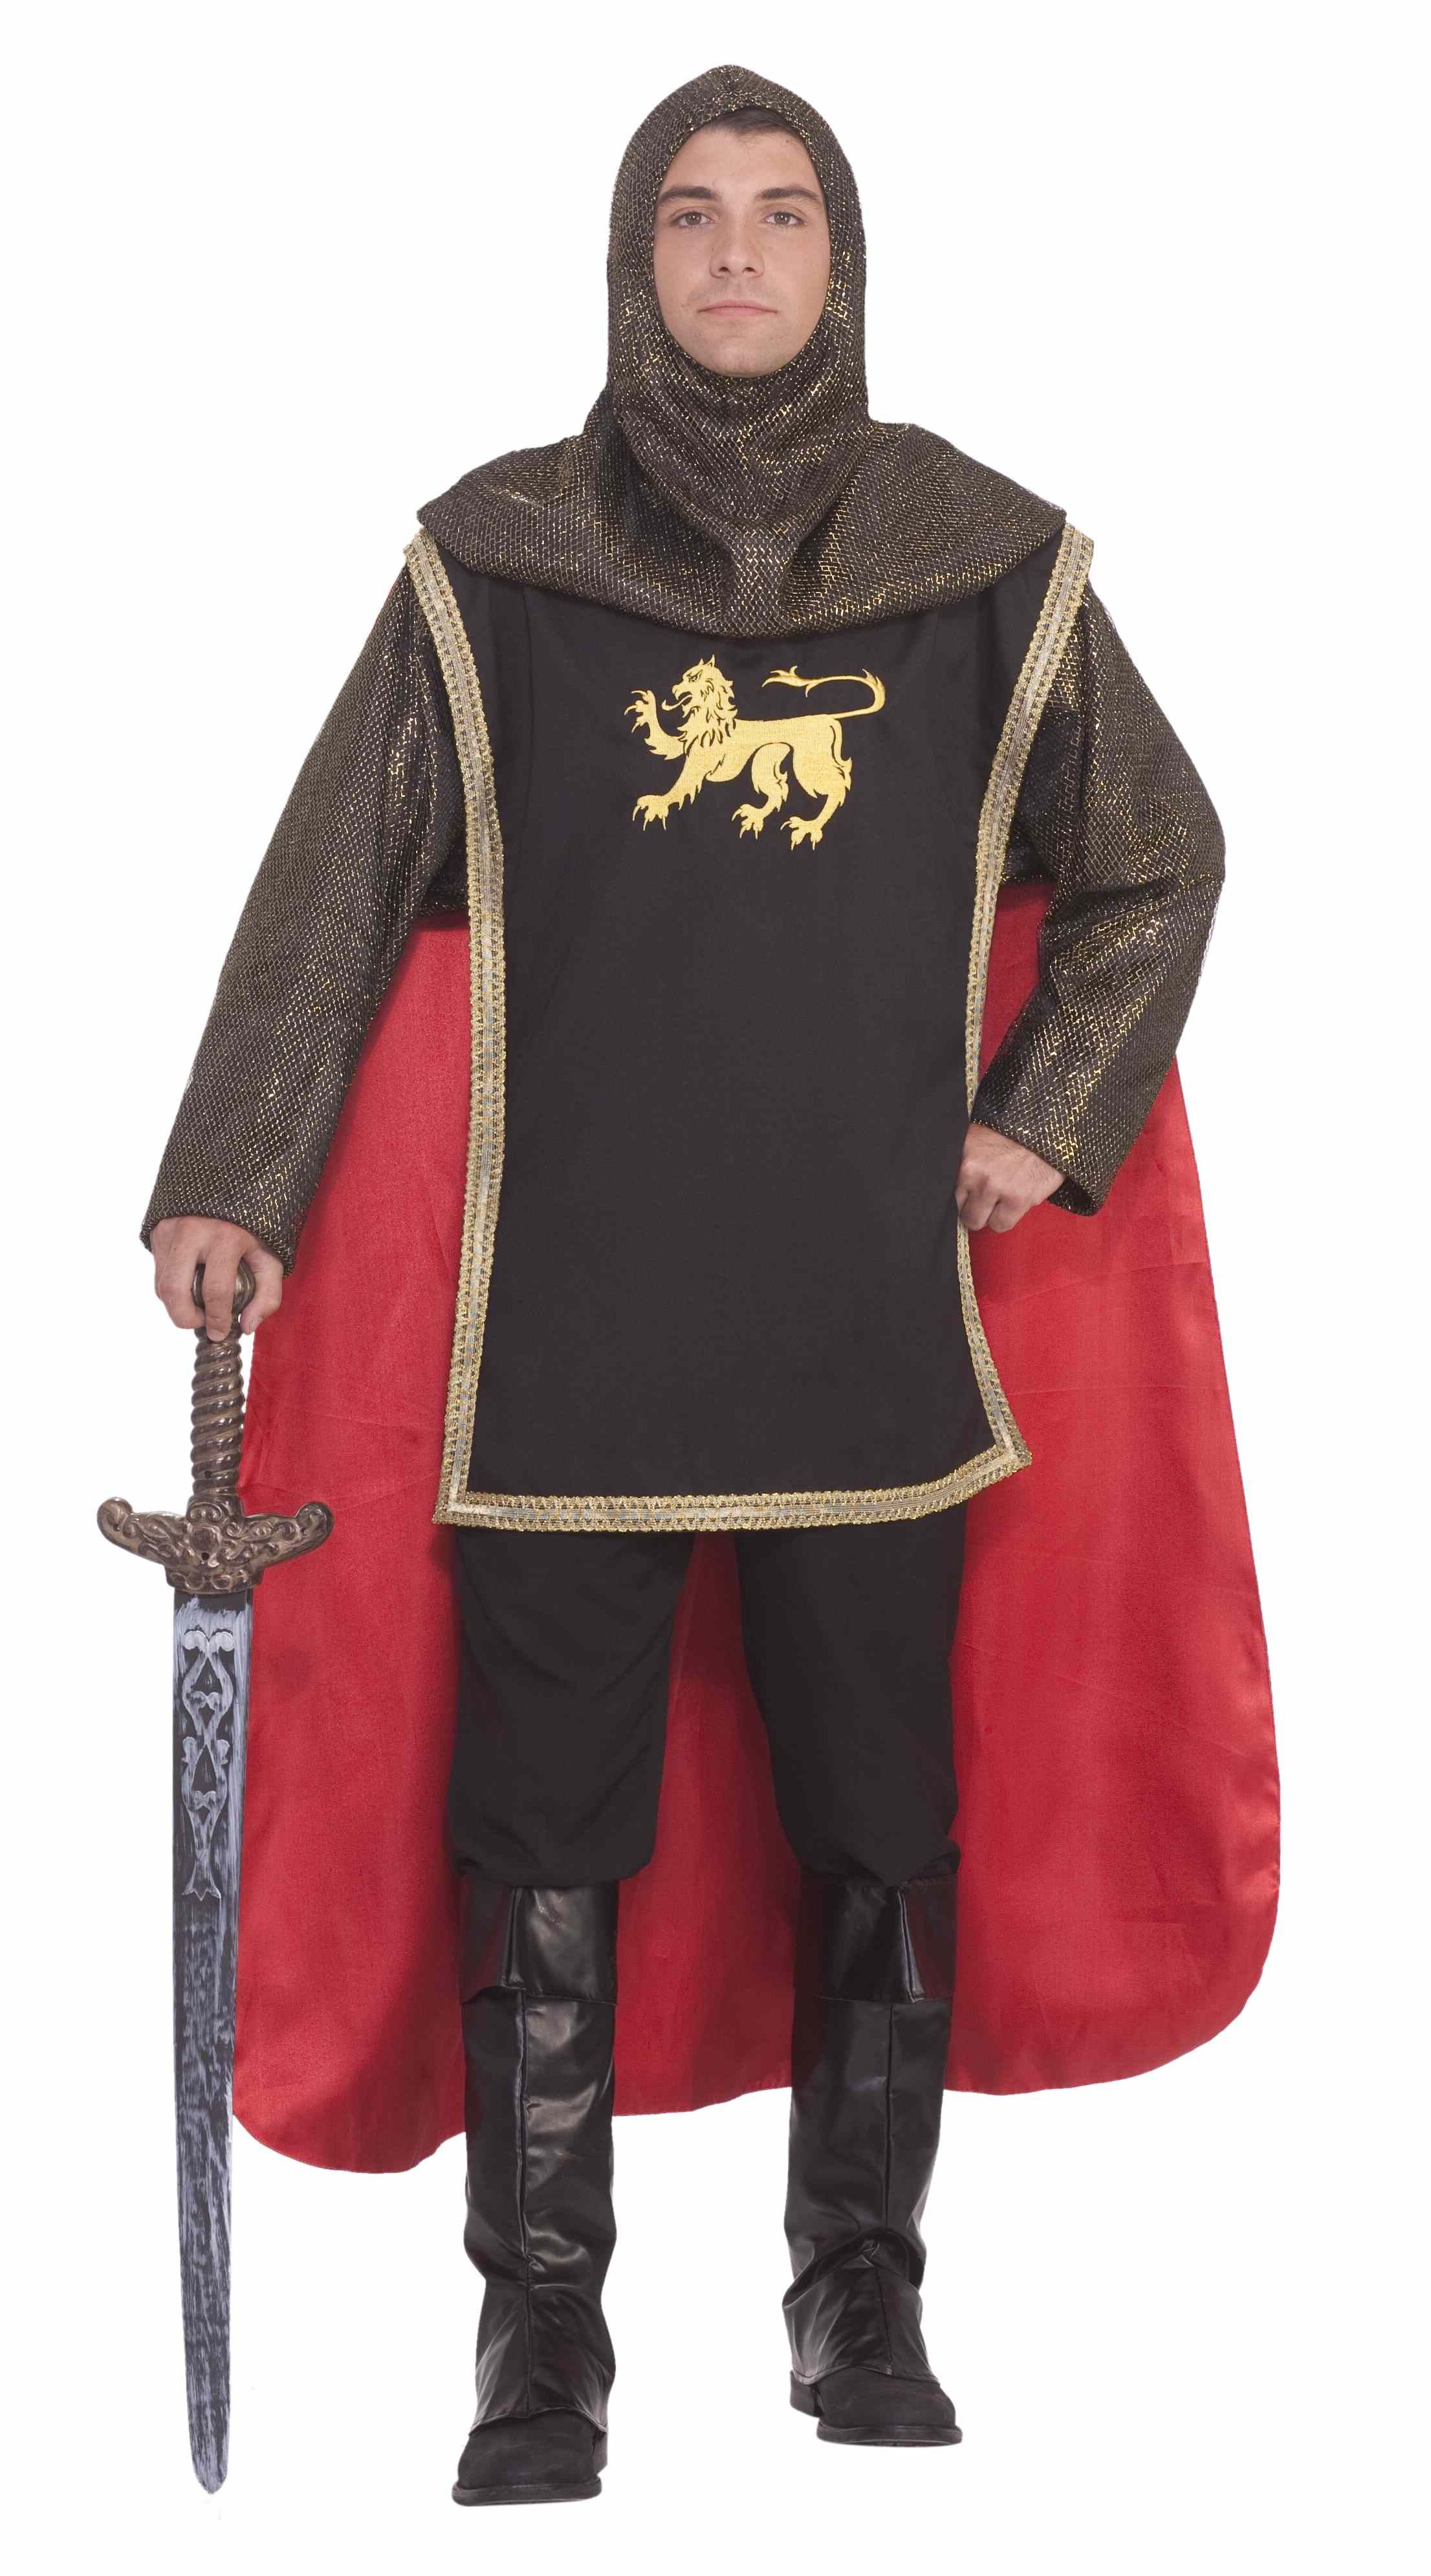 Adult Medieval Knight Costume | $49.99 | The Costume Land